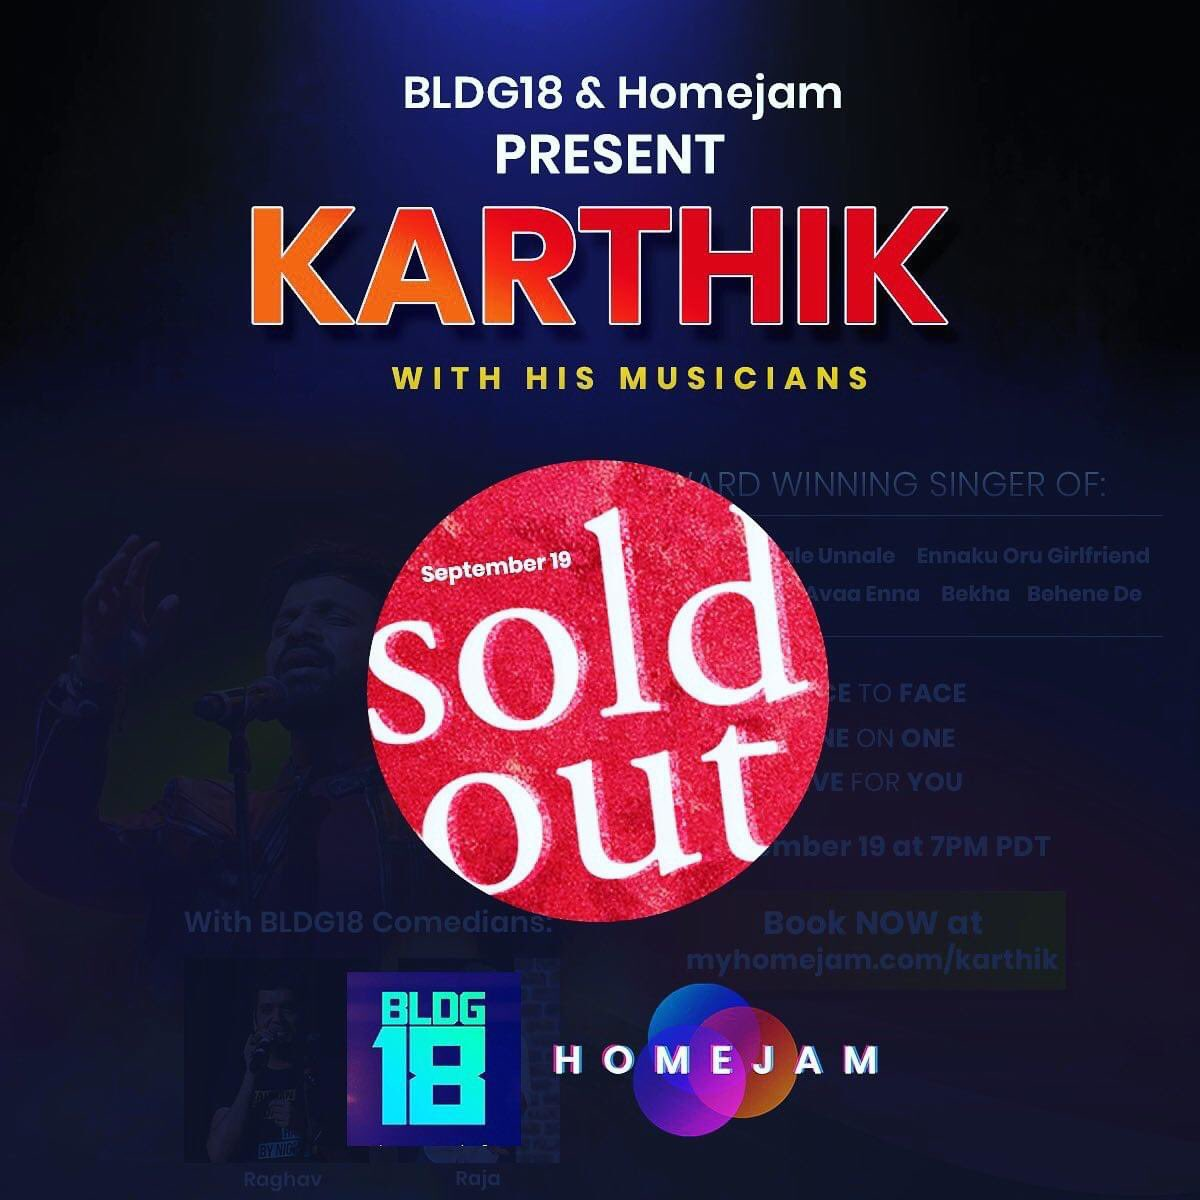 Thank you guys! See you all there😊  #MyHomeJam https://t.co/2IHRMMpd60